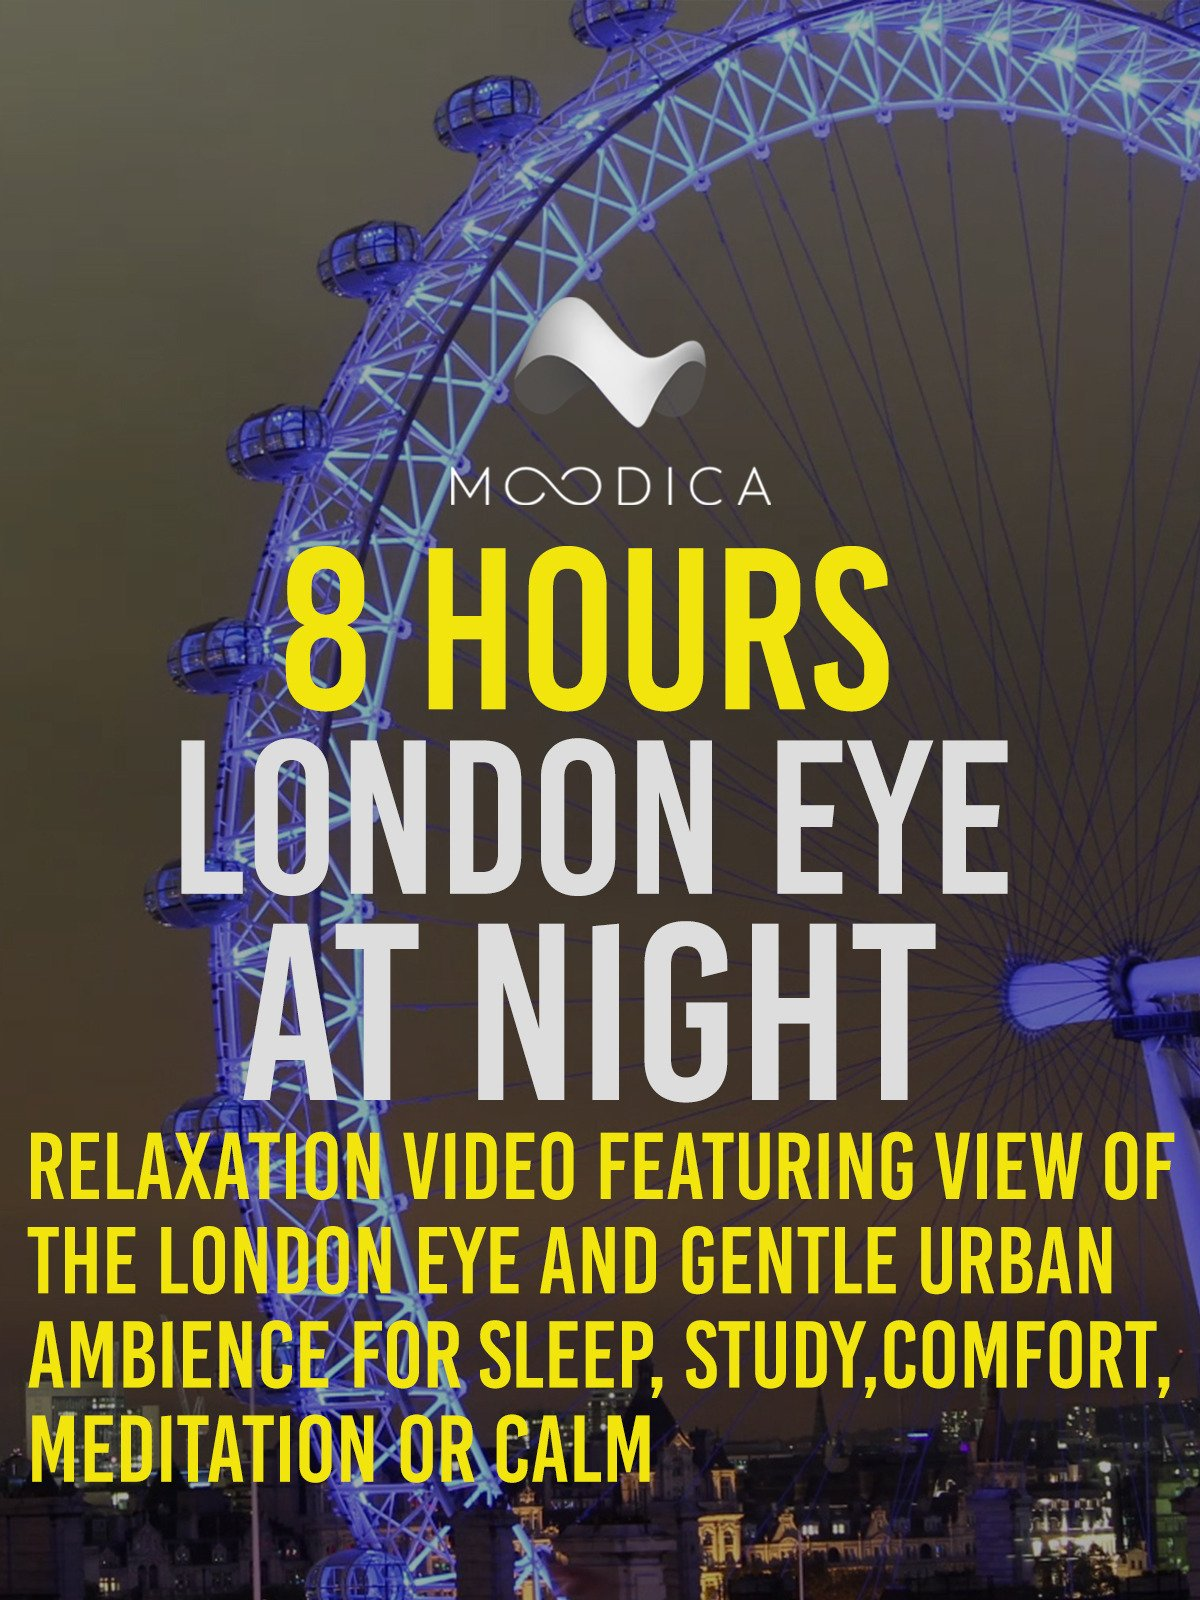 8 Hours: London Eye At Night: Relaxation Video Featuring View of the London Eye and Gentle Urban Ambience for Sleep, Study, Comfort, or Meditation